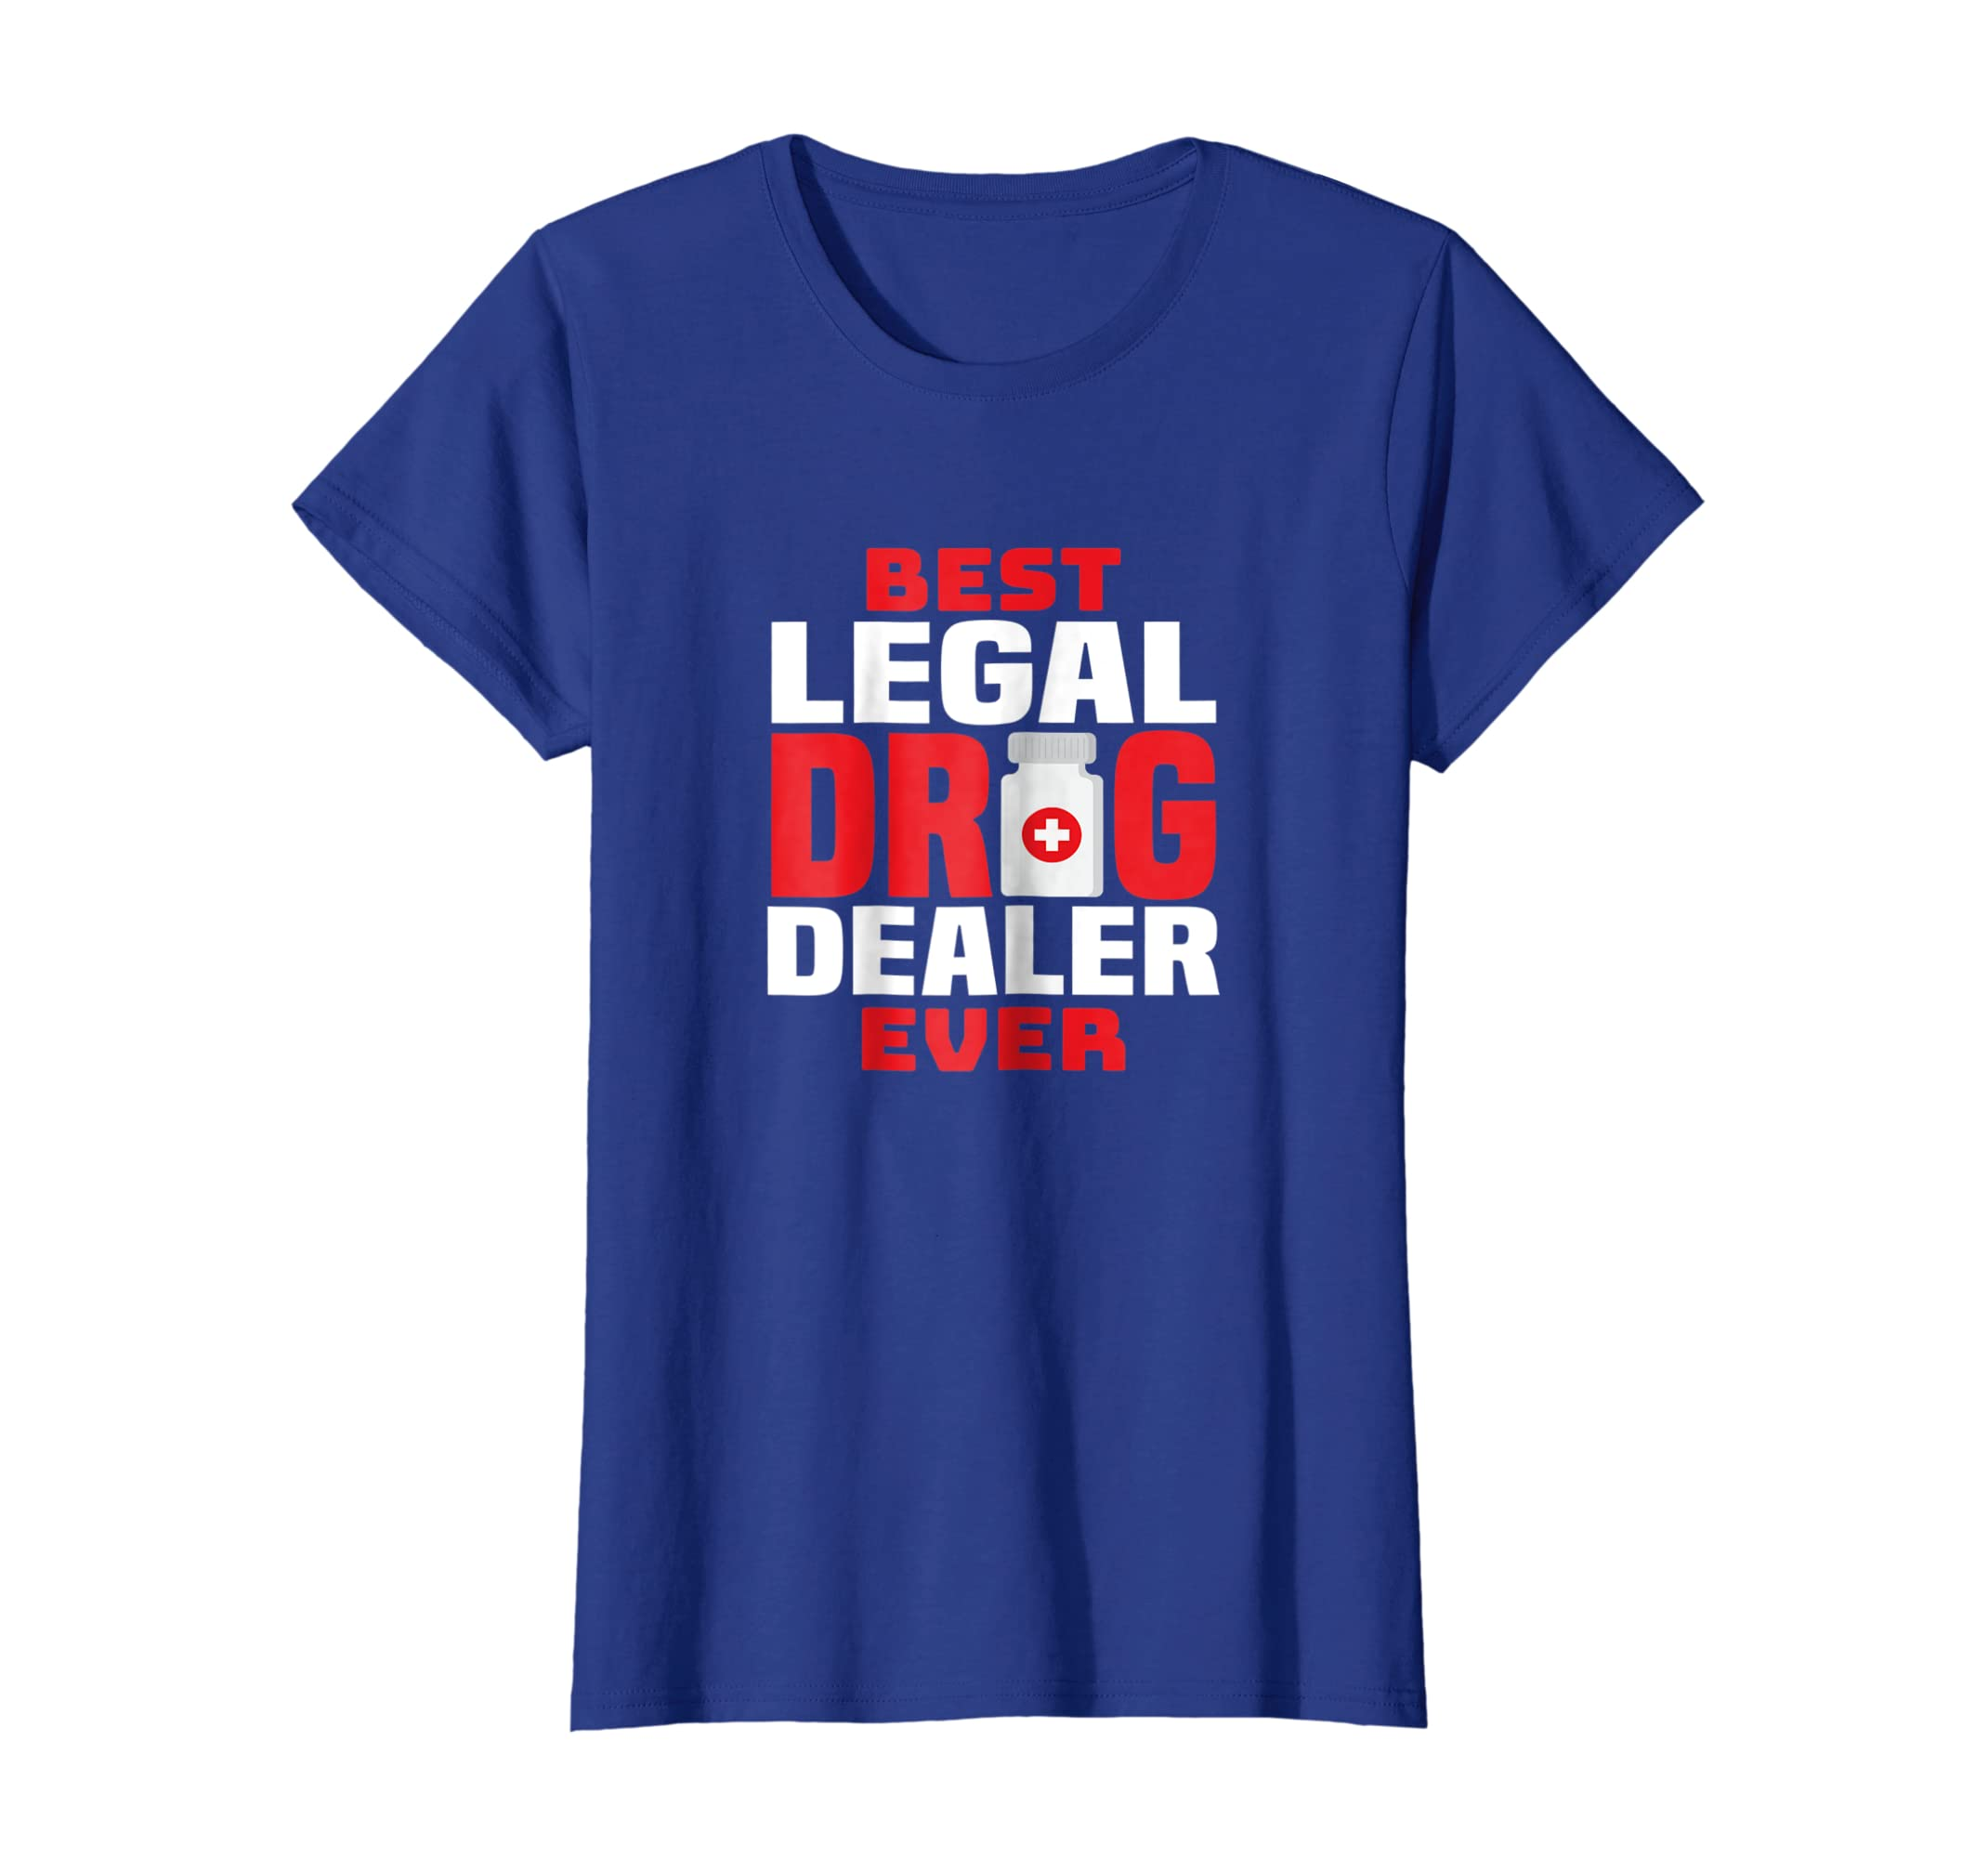 6bbd4ea93b Amazon.com: Pharmacist Legal Drug Dealer T-Shirt Funny Pharmacy Gift:  Clothing